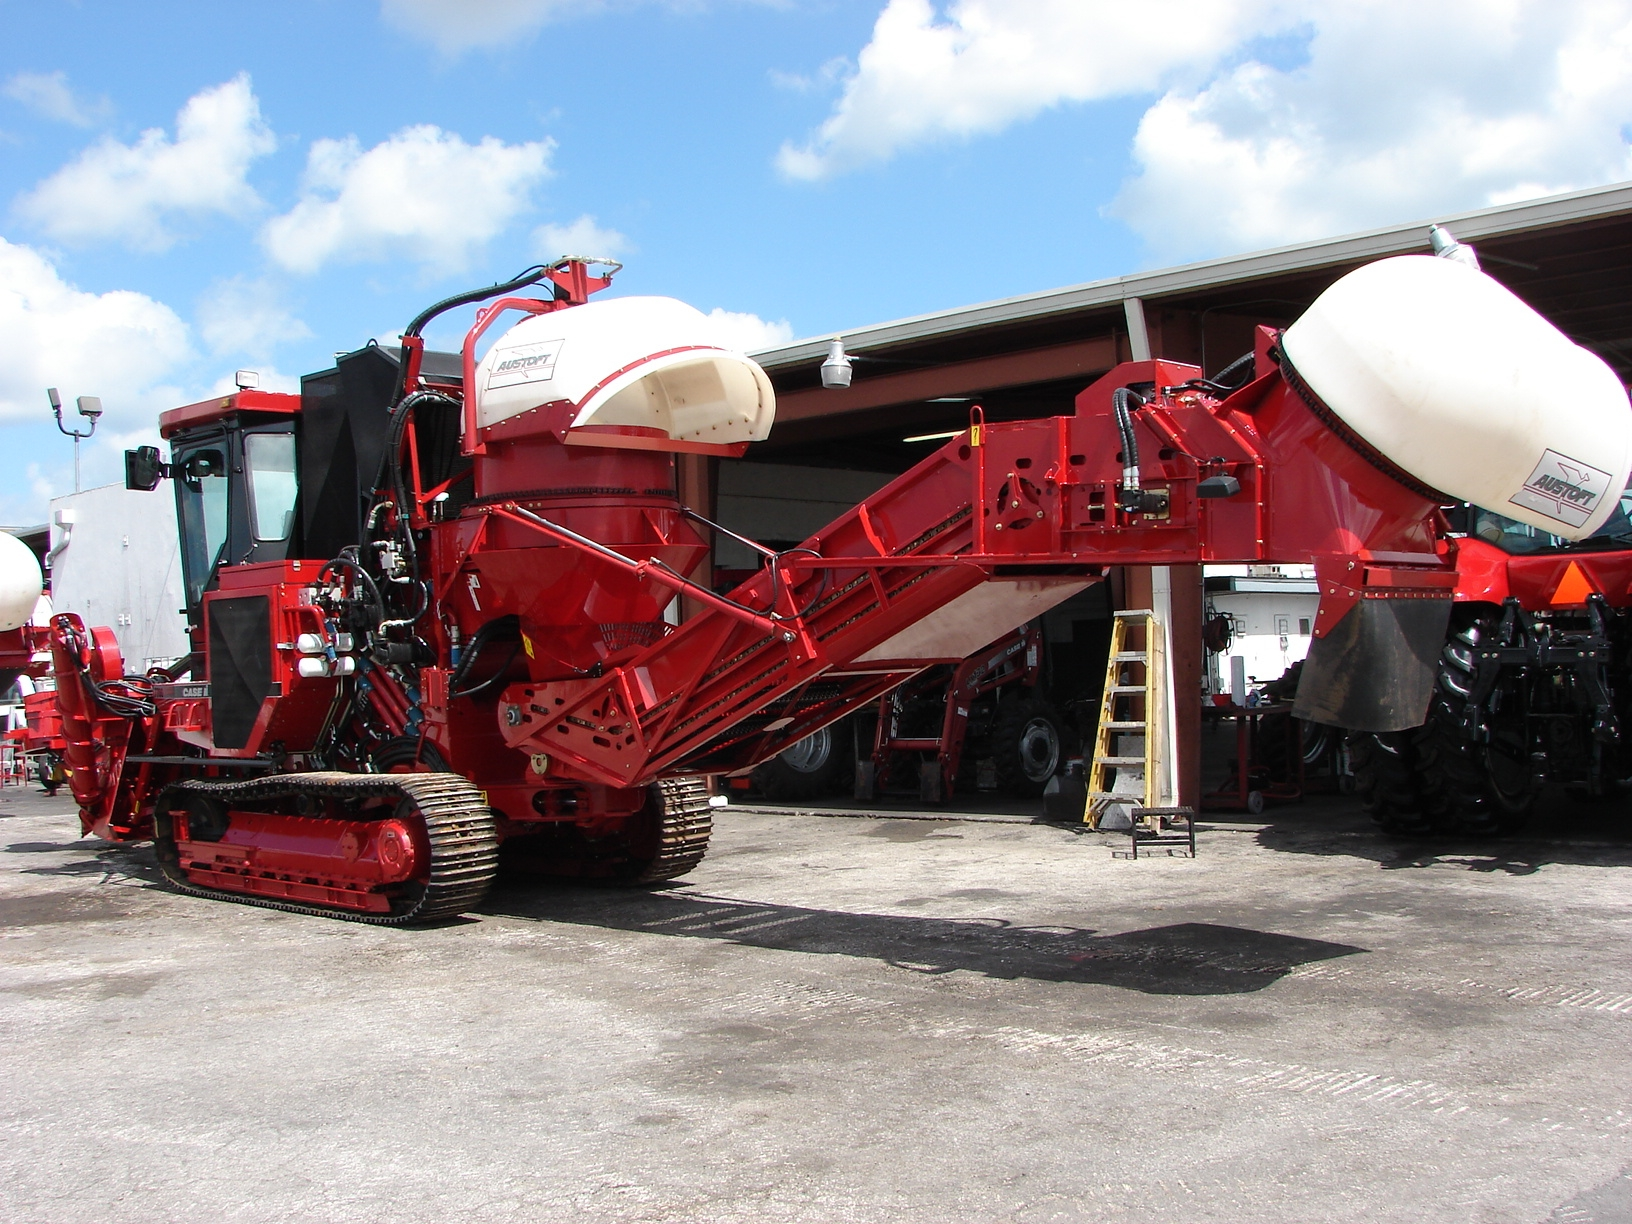 Used Tractors For Sale >> SUGAR CANE HARVESTERS FOR SALE